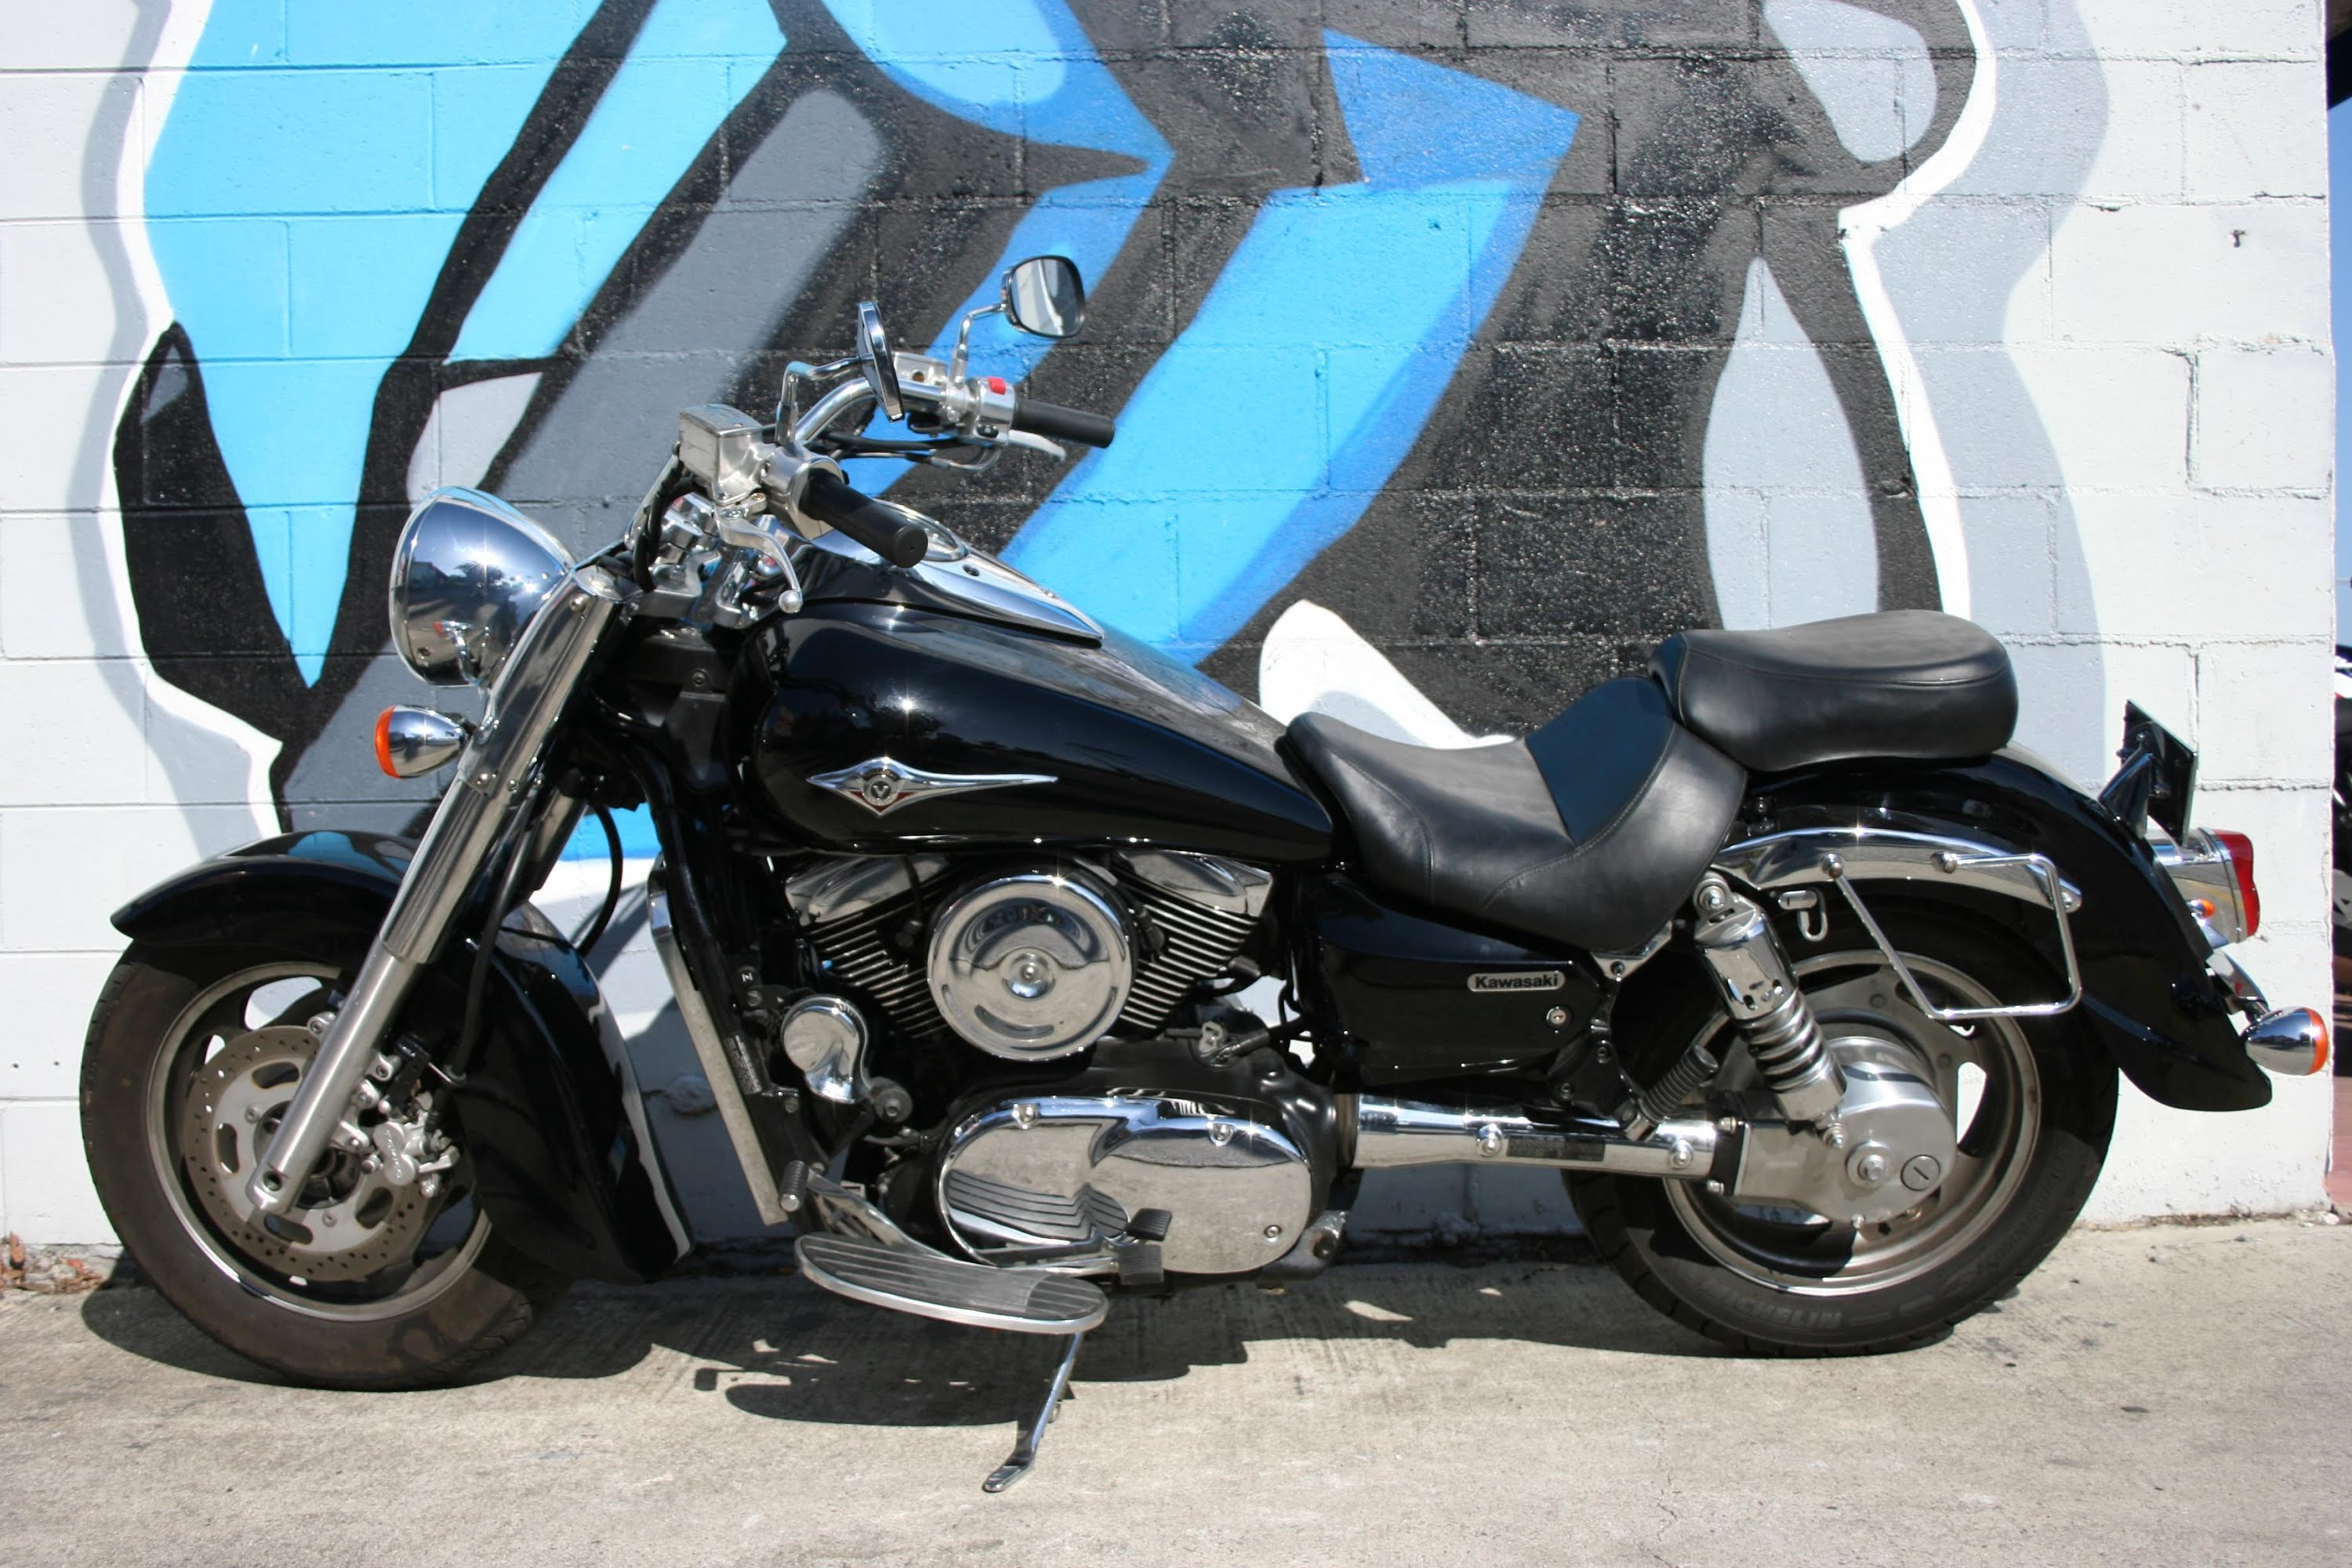 2005 kawasaki vn 1600 classic pics specs and information. Black Bedroom Furniture Sets. Home Design Ideas